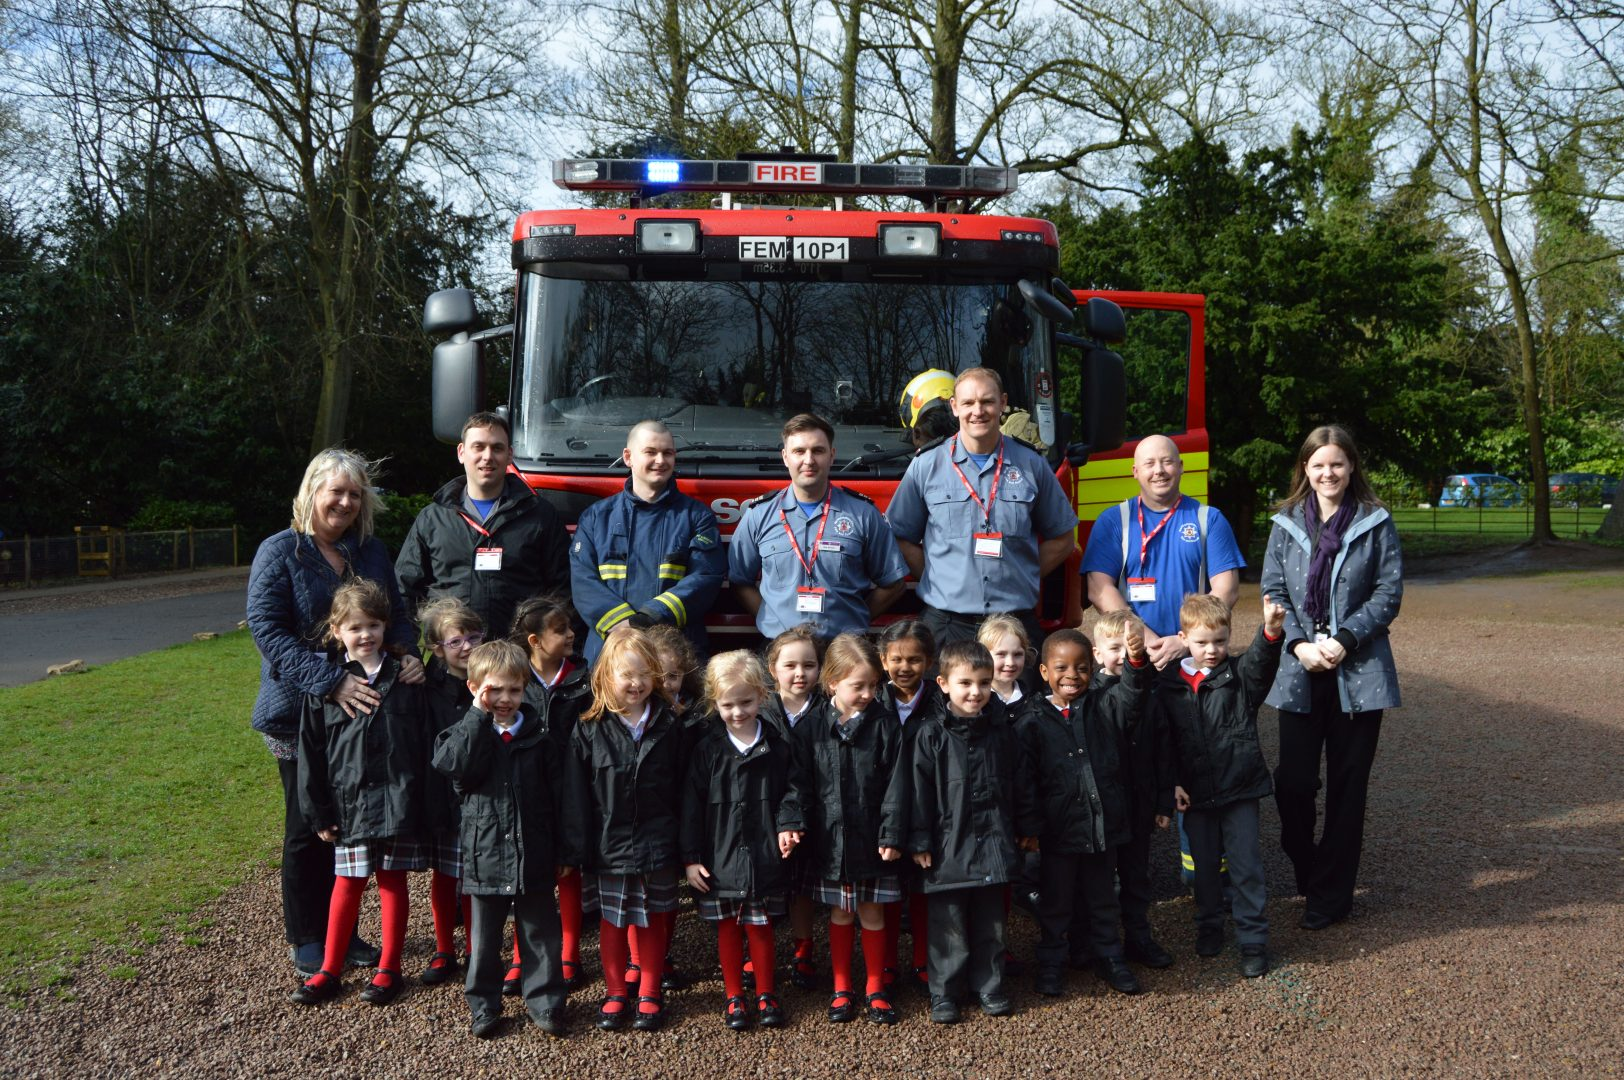 QHS pupils enjoy time with the fire brigade